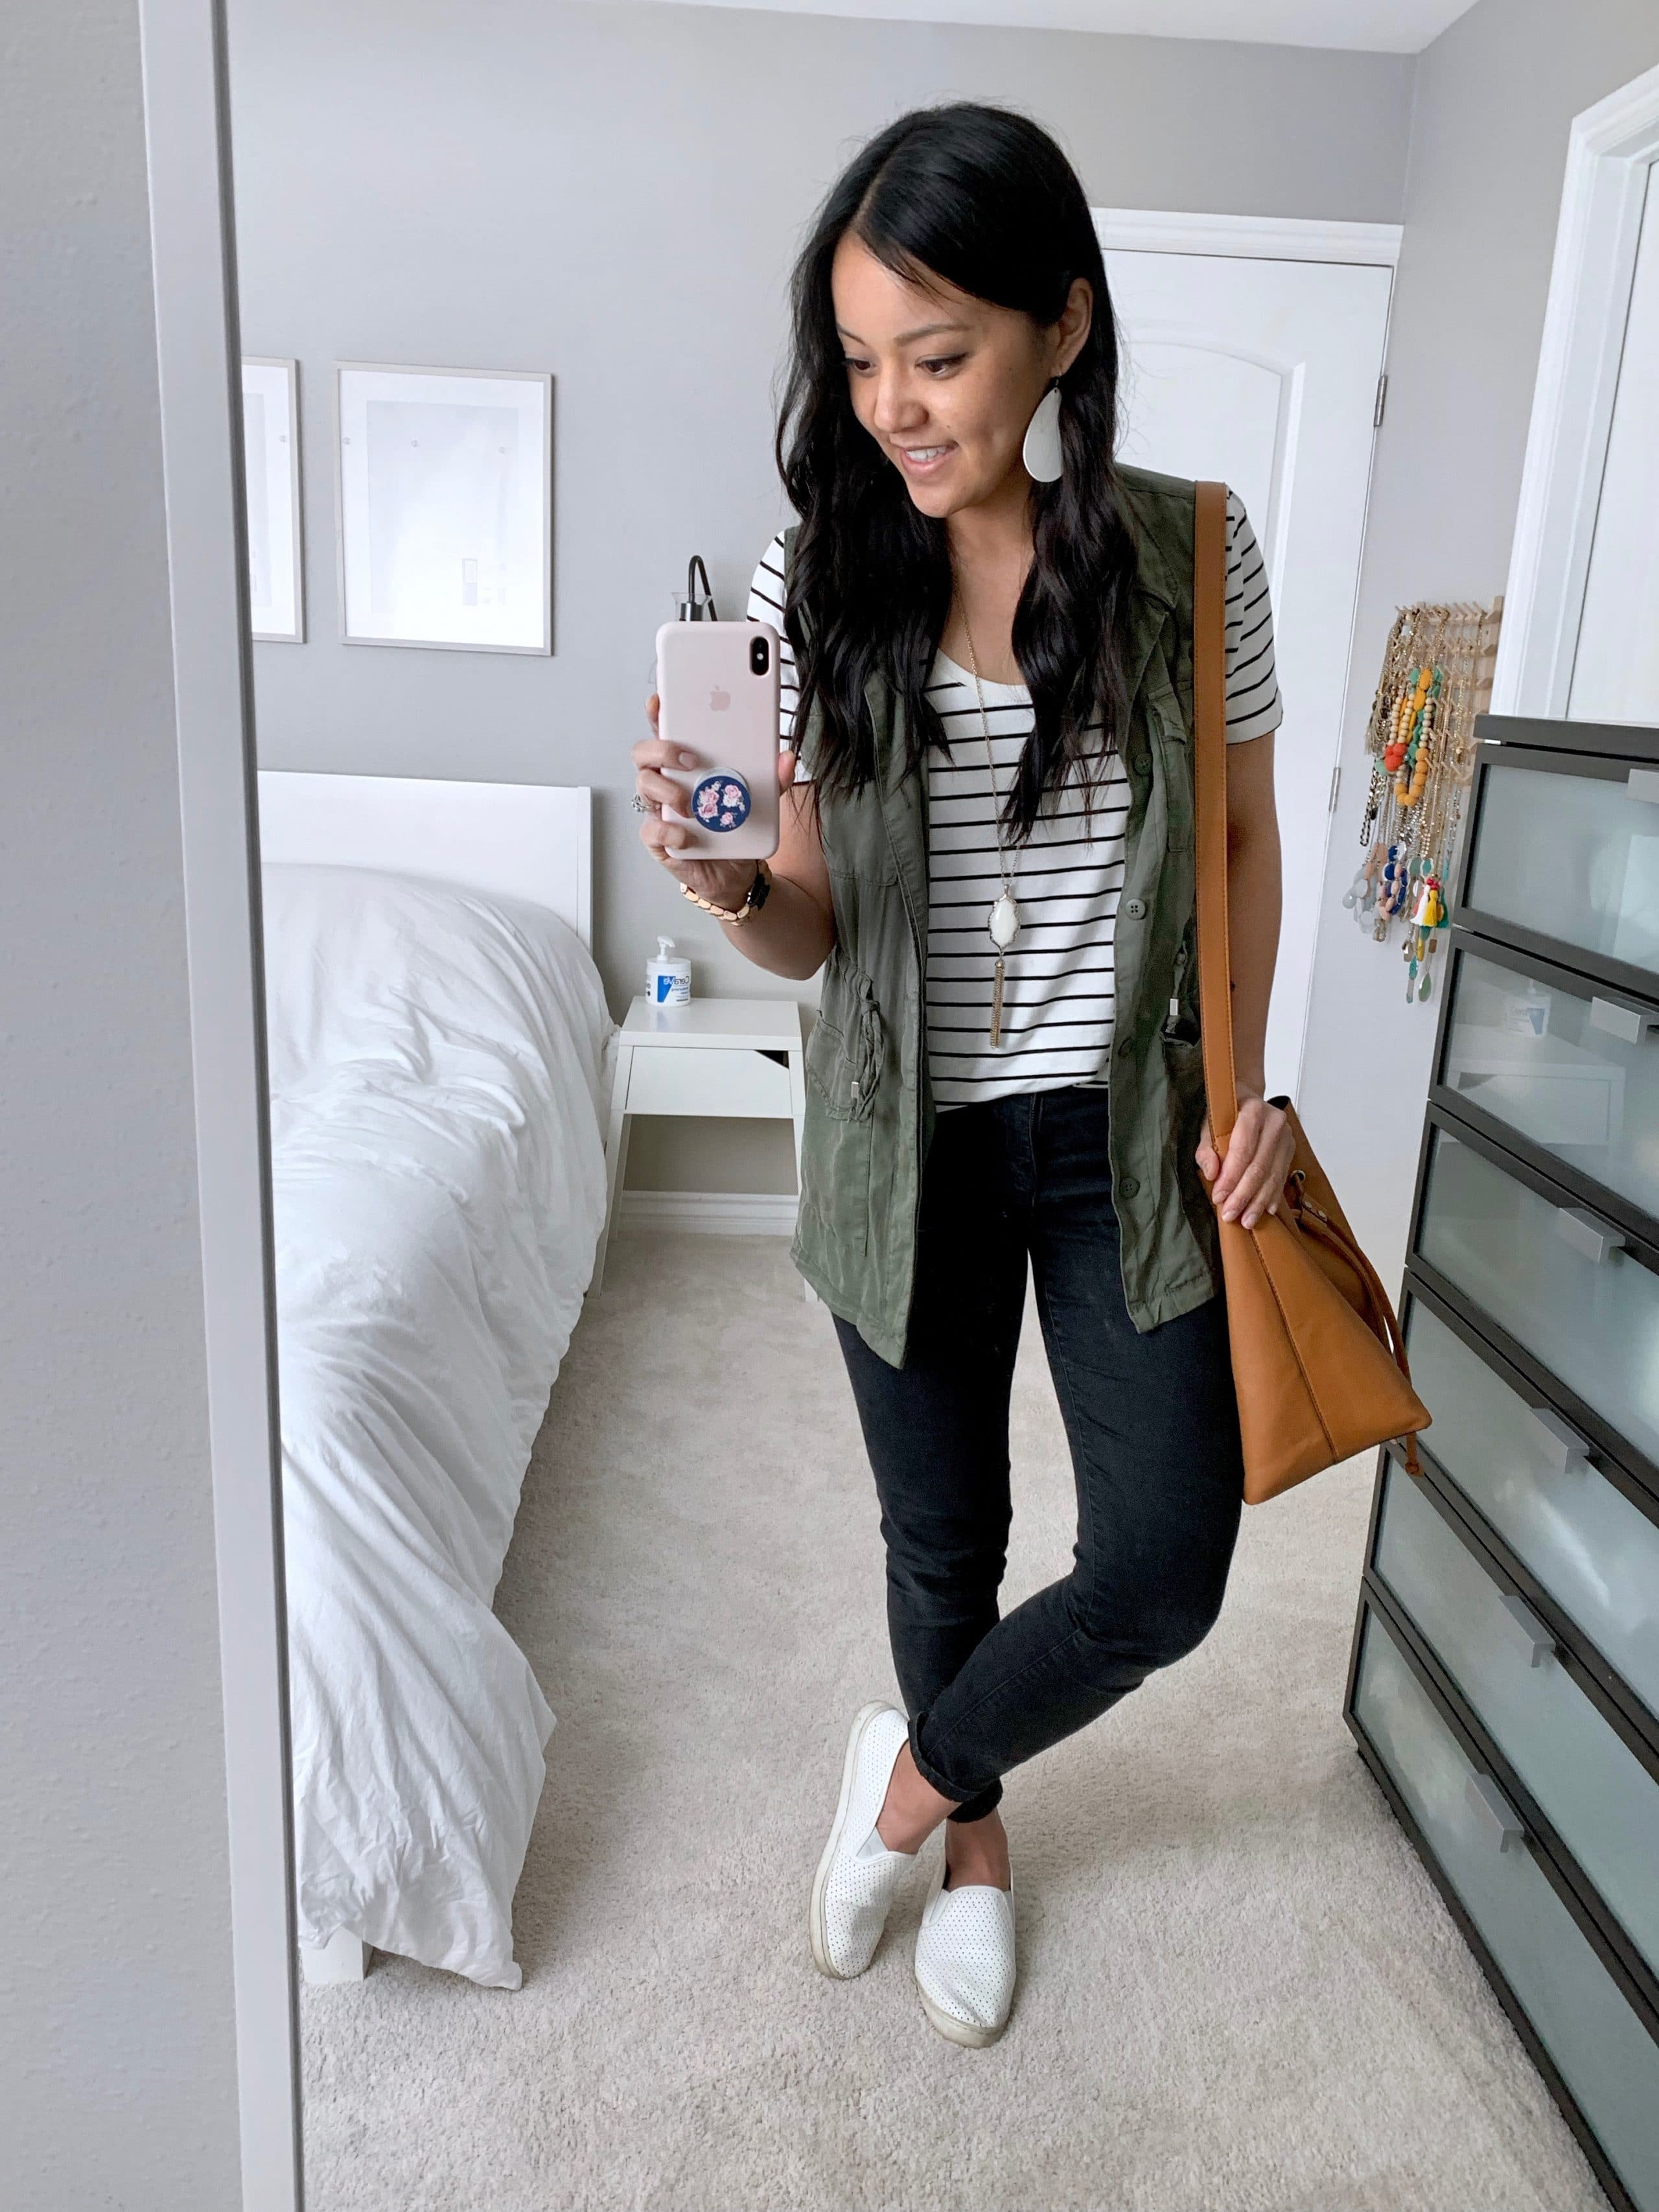 Casual Weekend Outfit: Striped Tee + Utility Vest